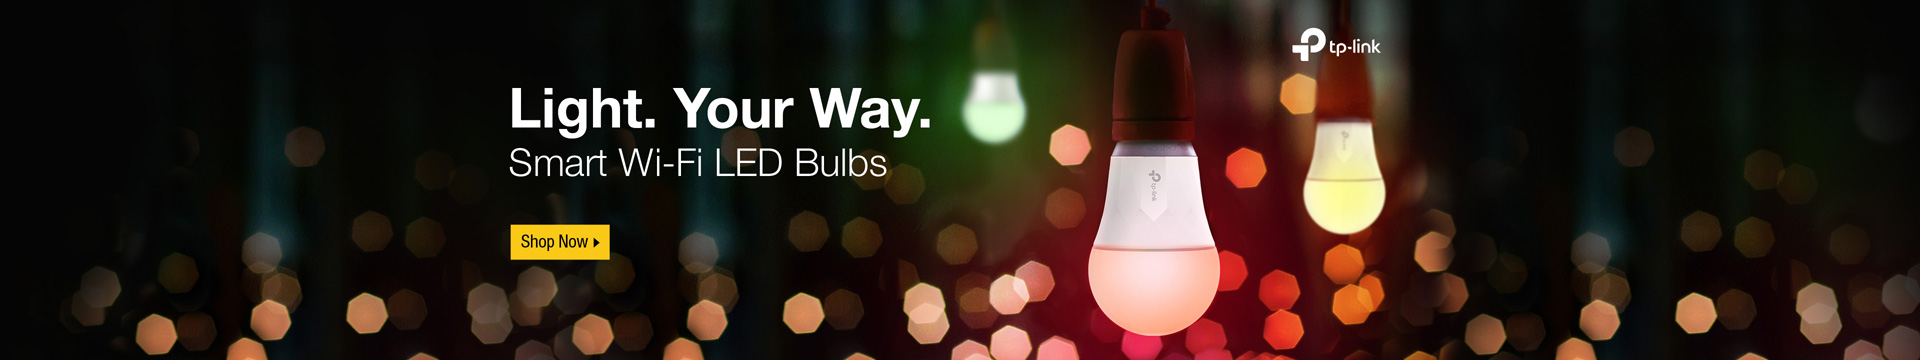 Light. Your Way. Smart Wi-Fi LED Bulbs